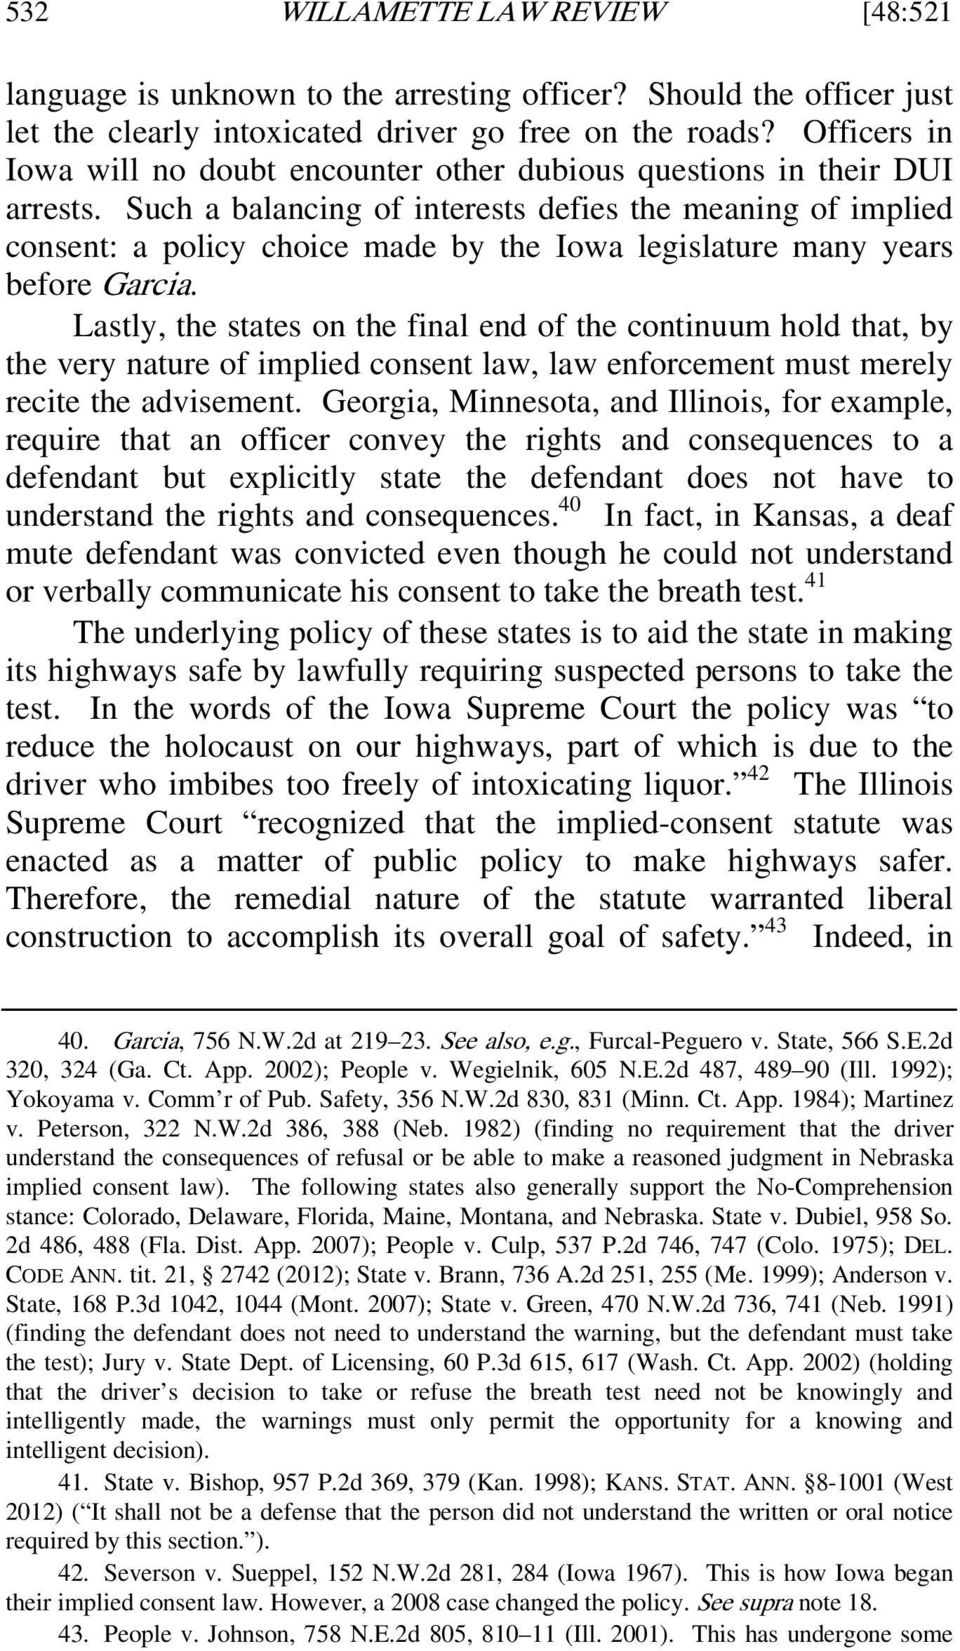 Such a balancing of interests defies the meaning of implied consent: a policy choice made by the Iowa legislature many years before Garcia.